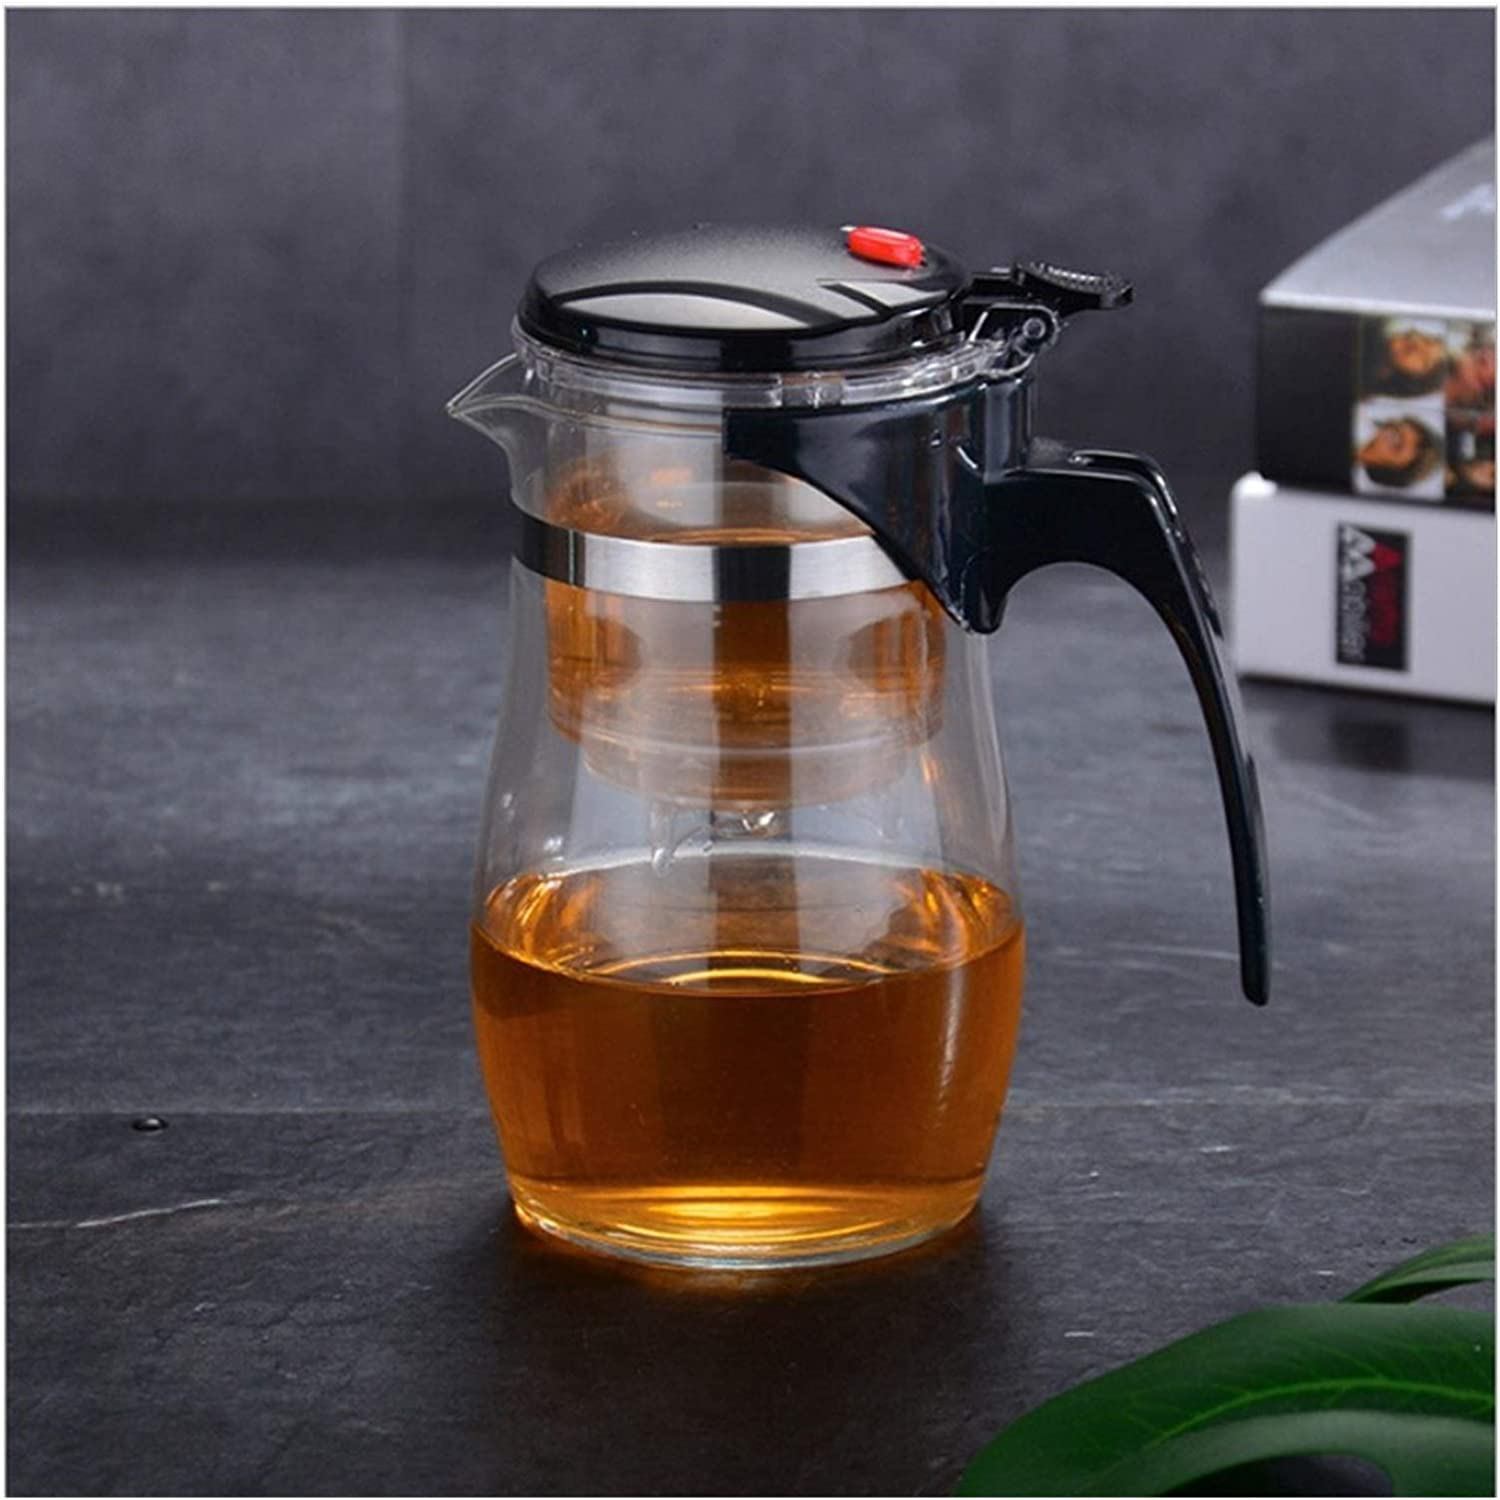 Baltimore New Free Shipping Mall Tea set Pots Heat Resistant Infuser Pot Glass Chines